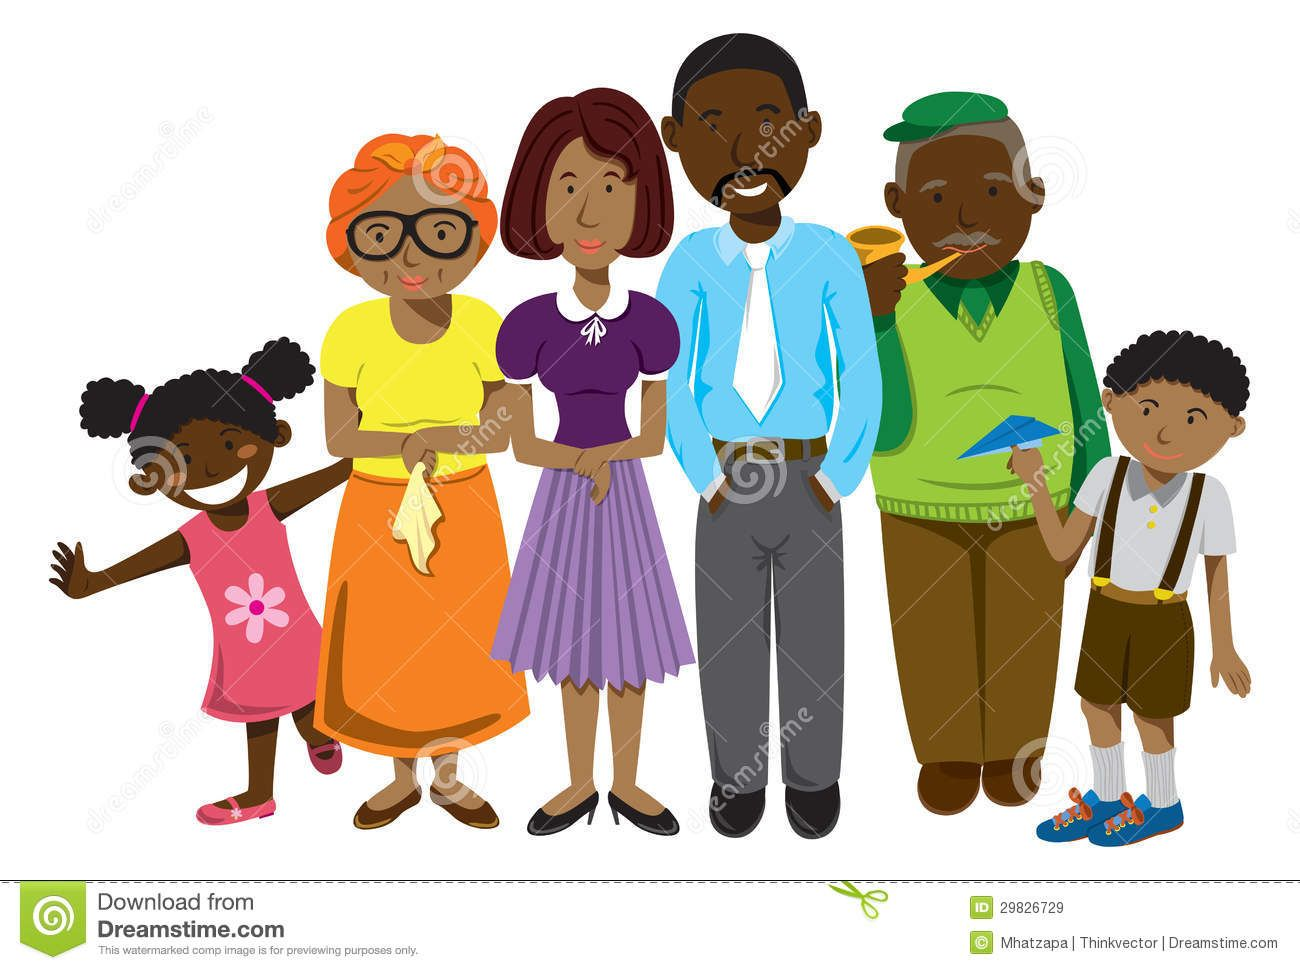 Aunt clipart african american. Family clip art royalty